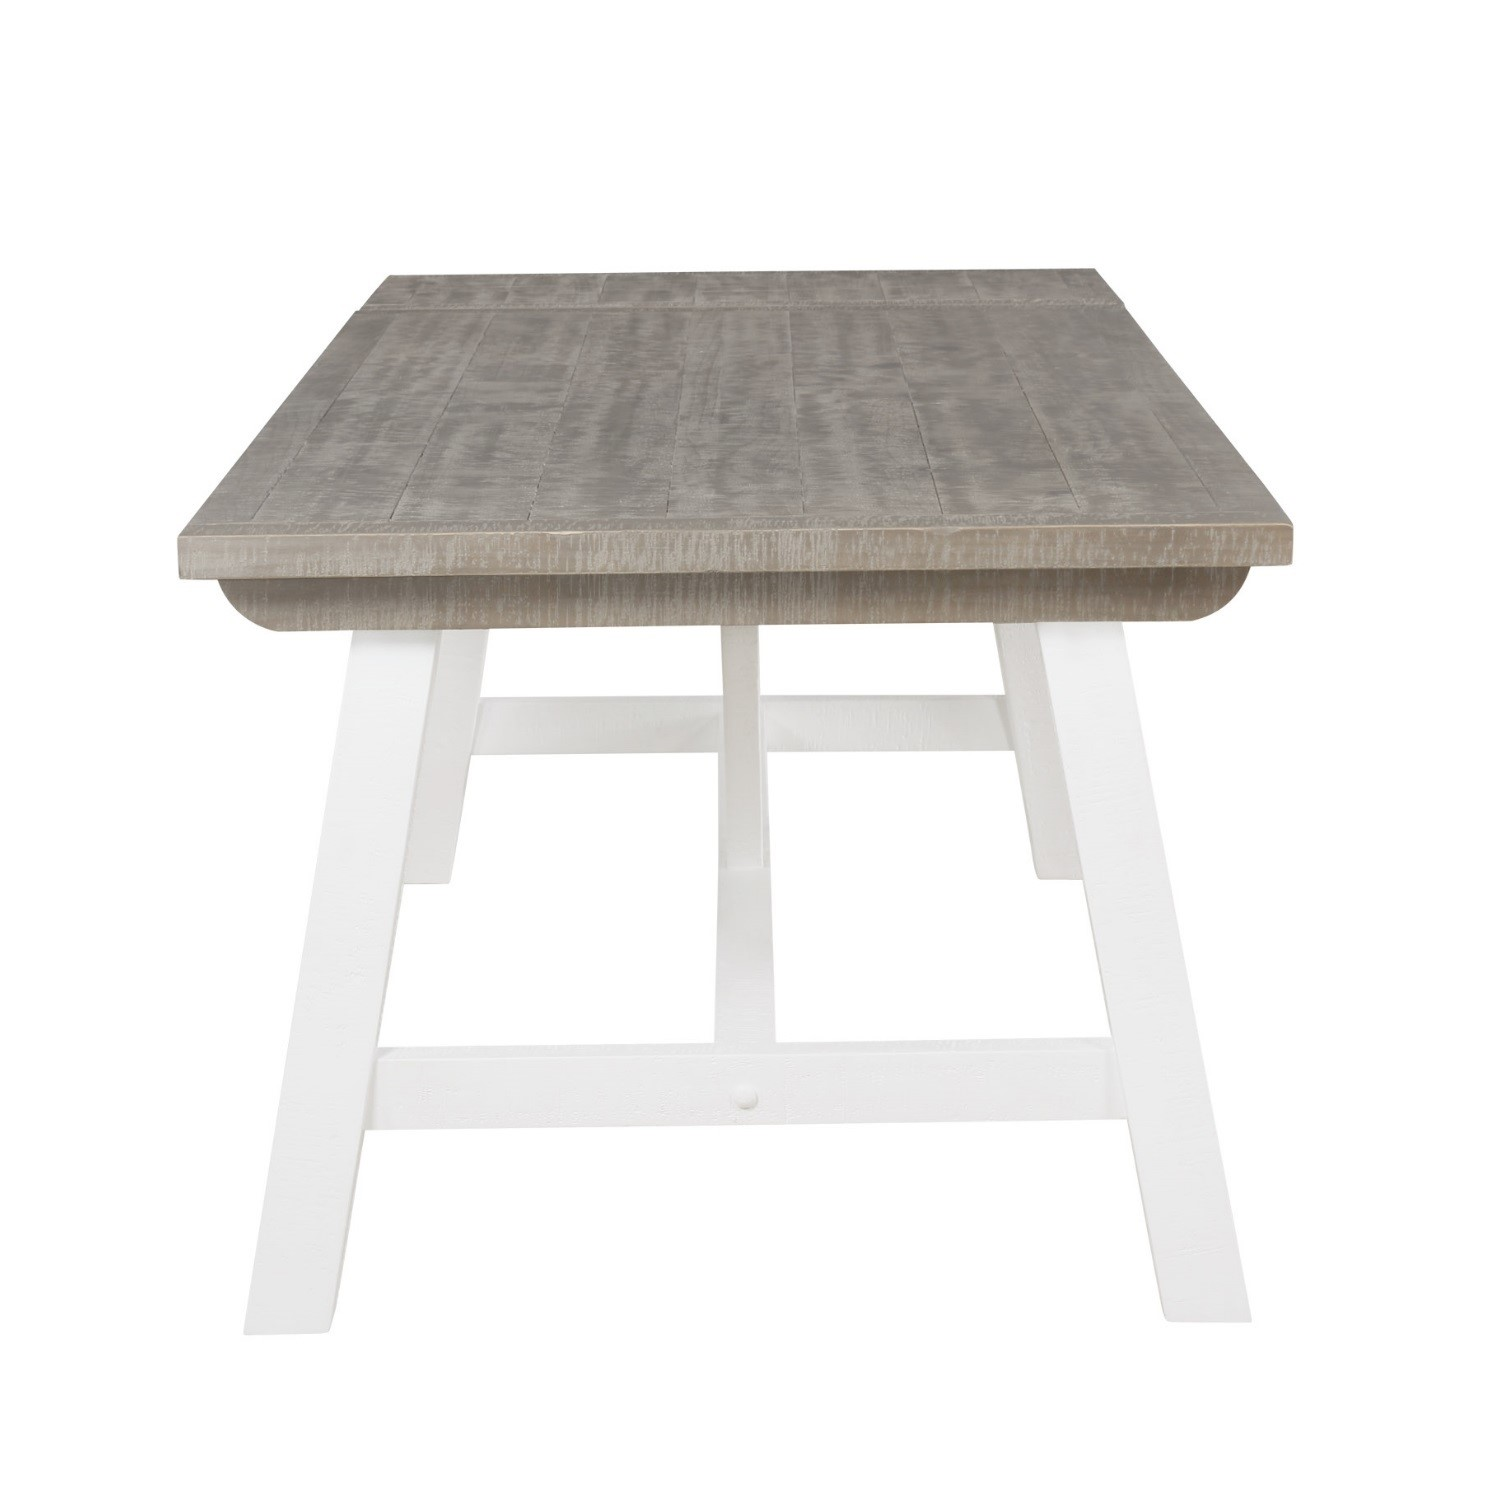 Wood Extendable Dining Table In White Wood Wash Fawsley Furniture123